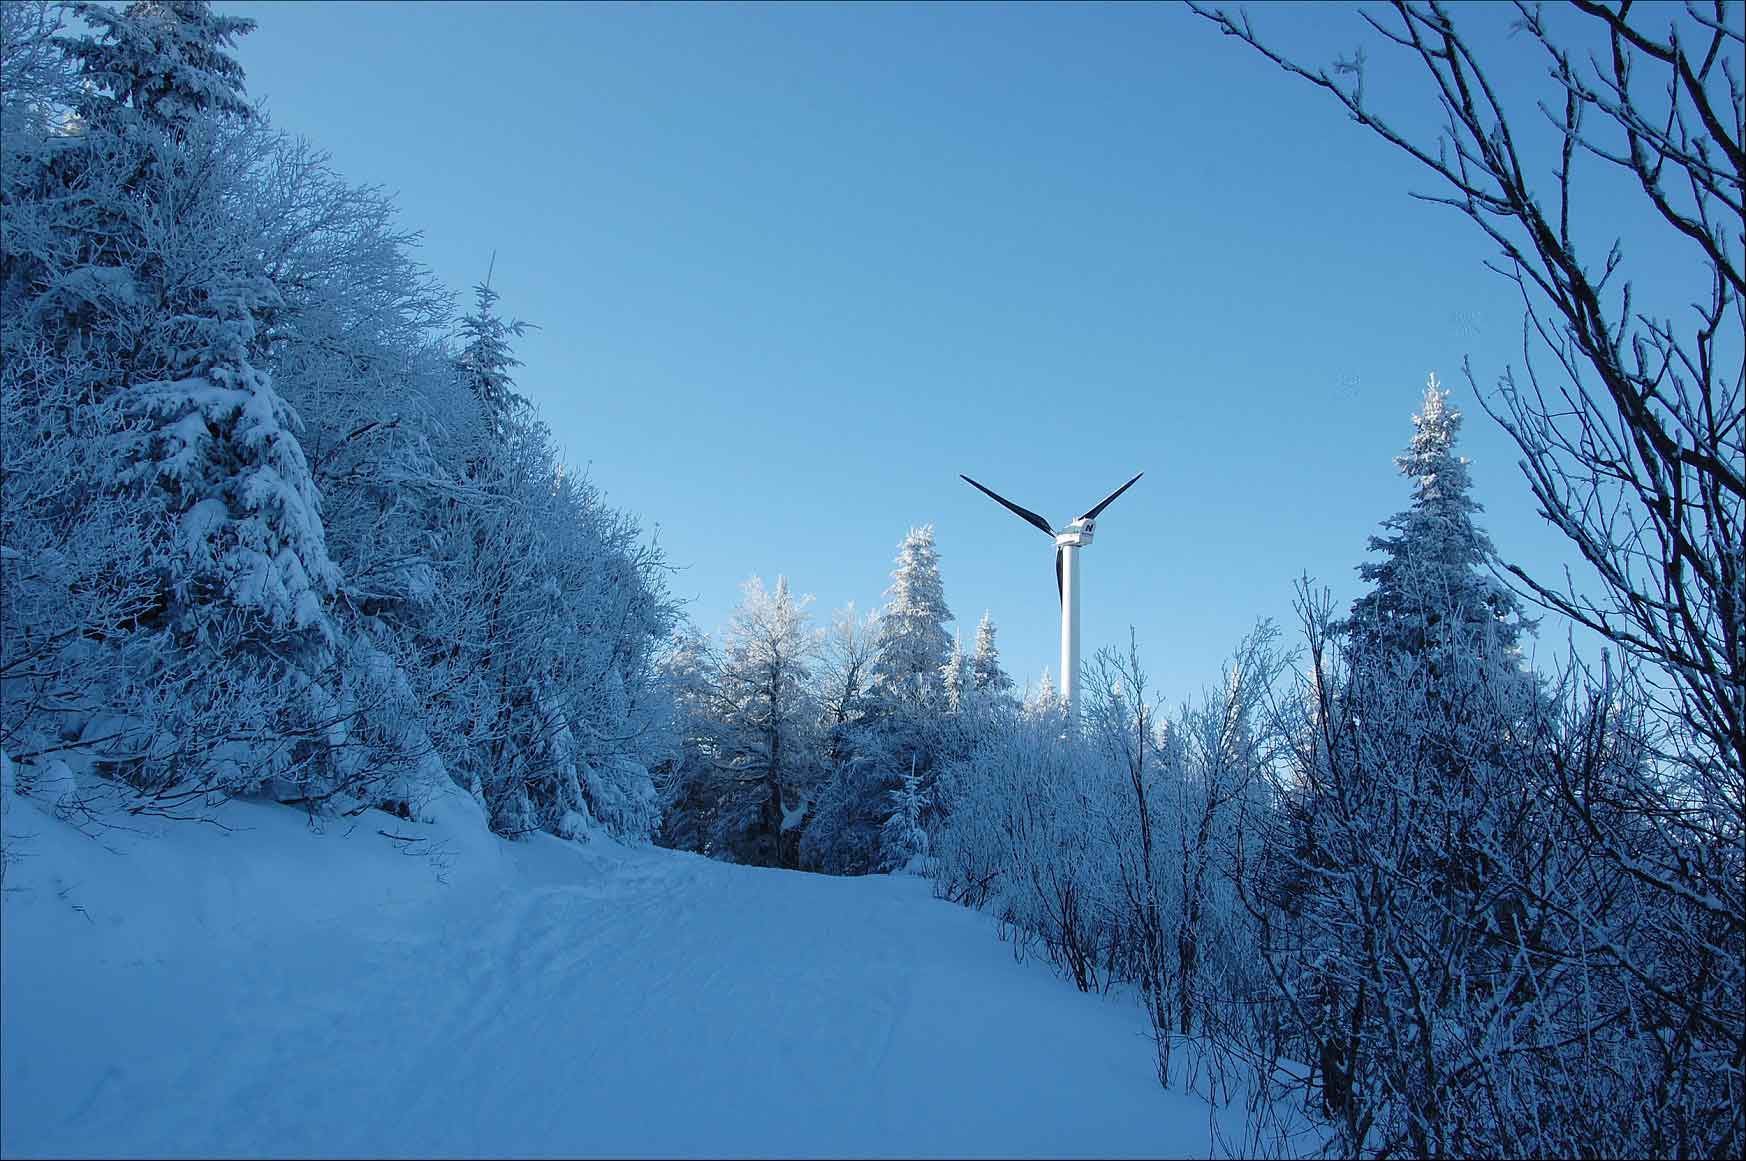 A distributed wind turbine on a snowy mountain.